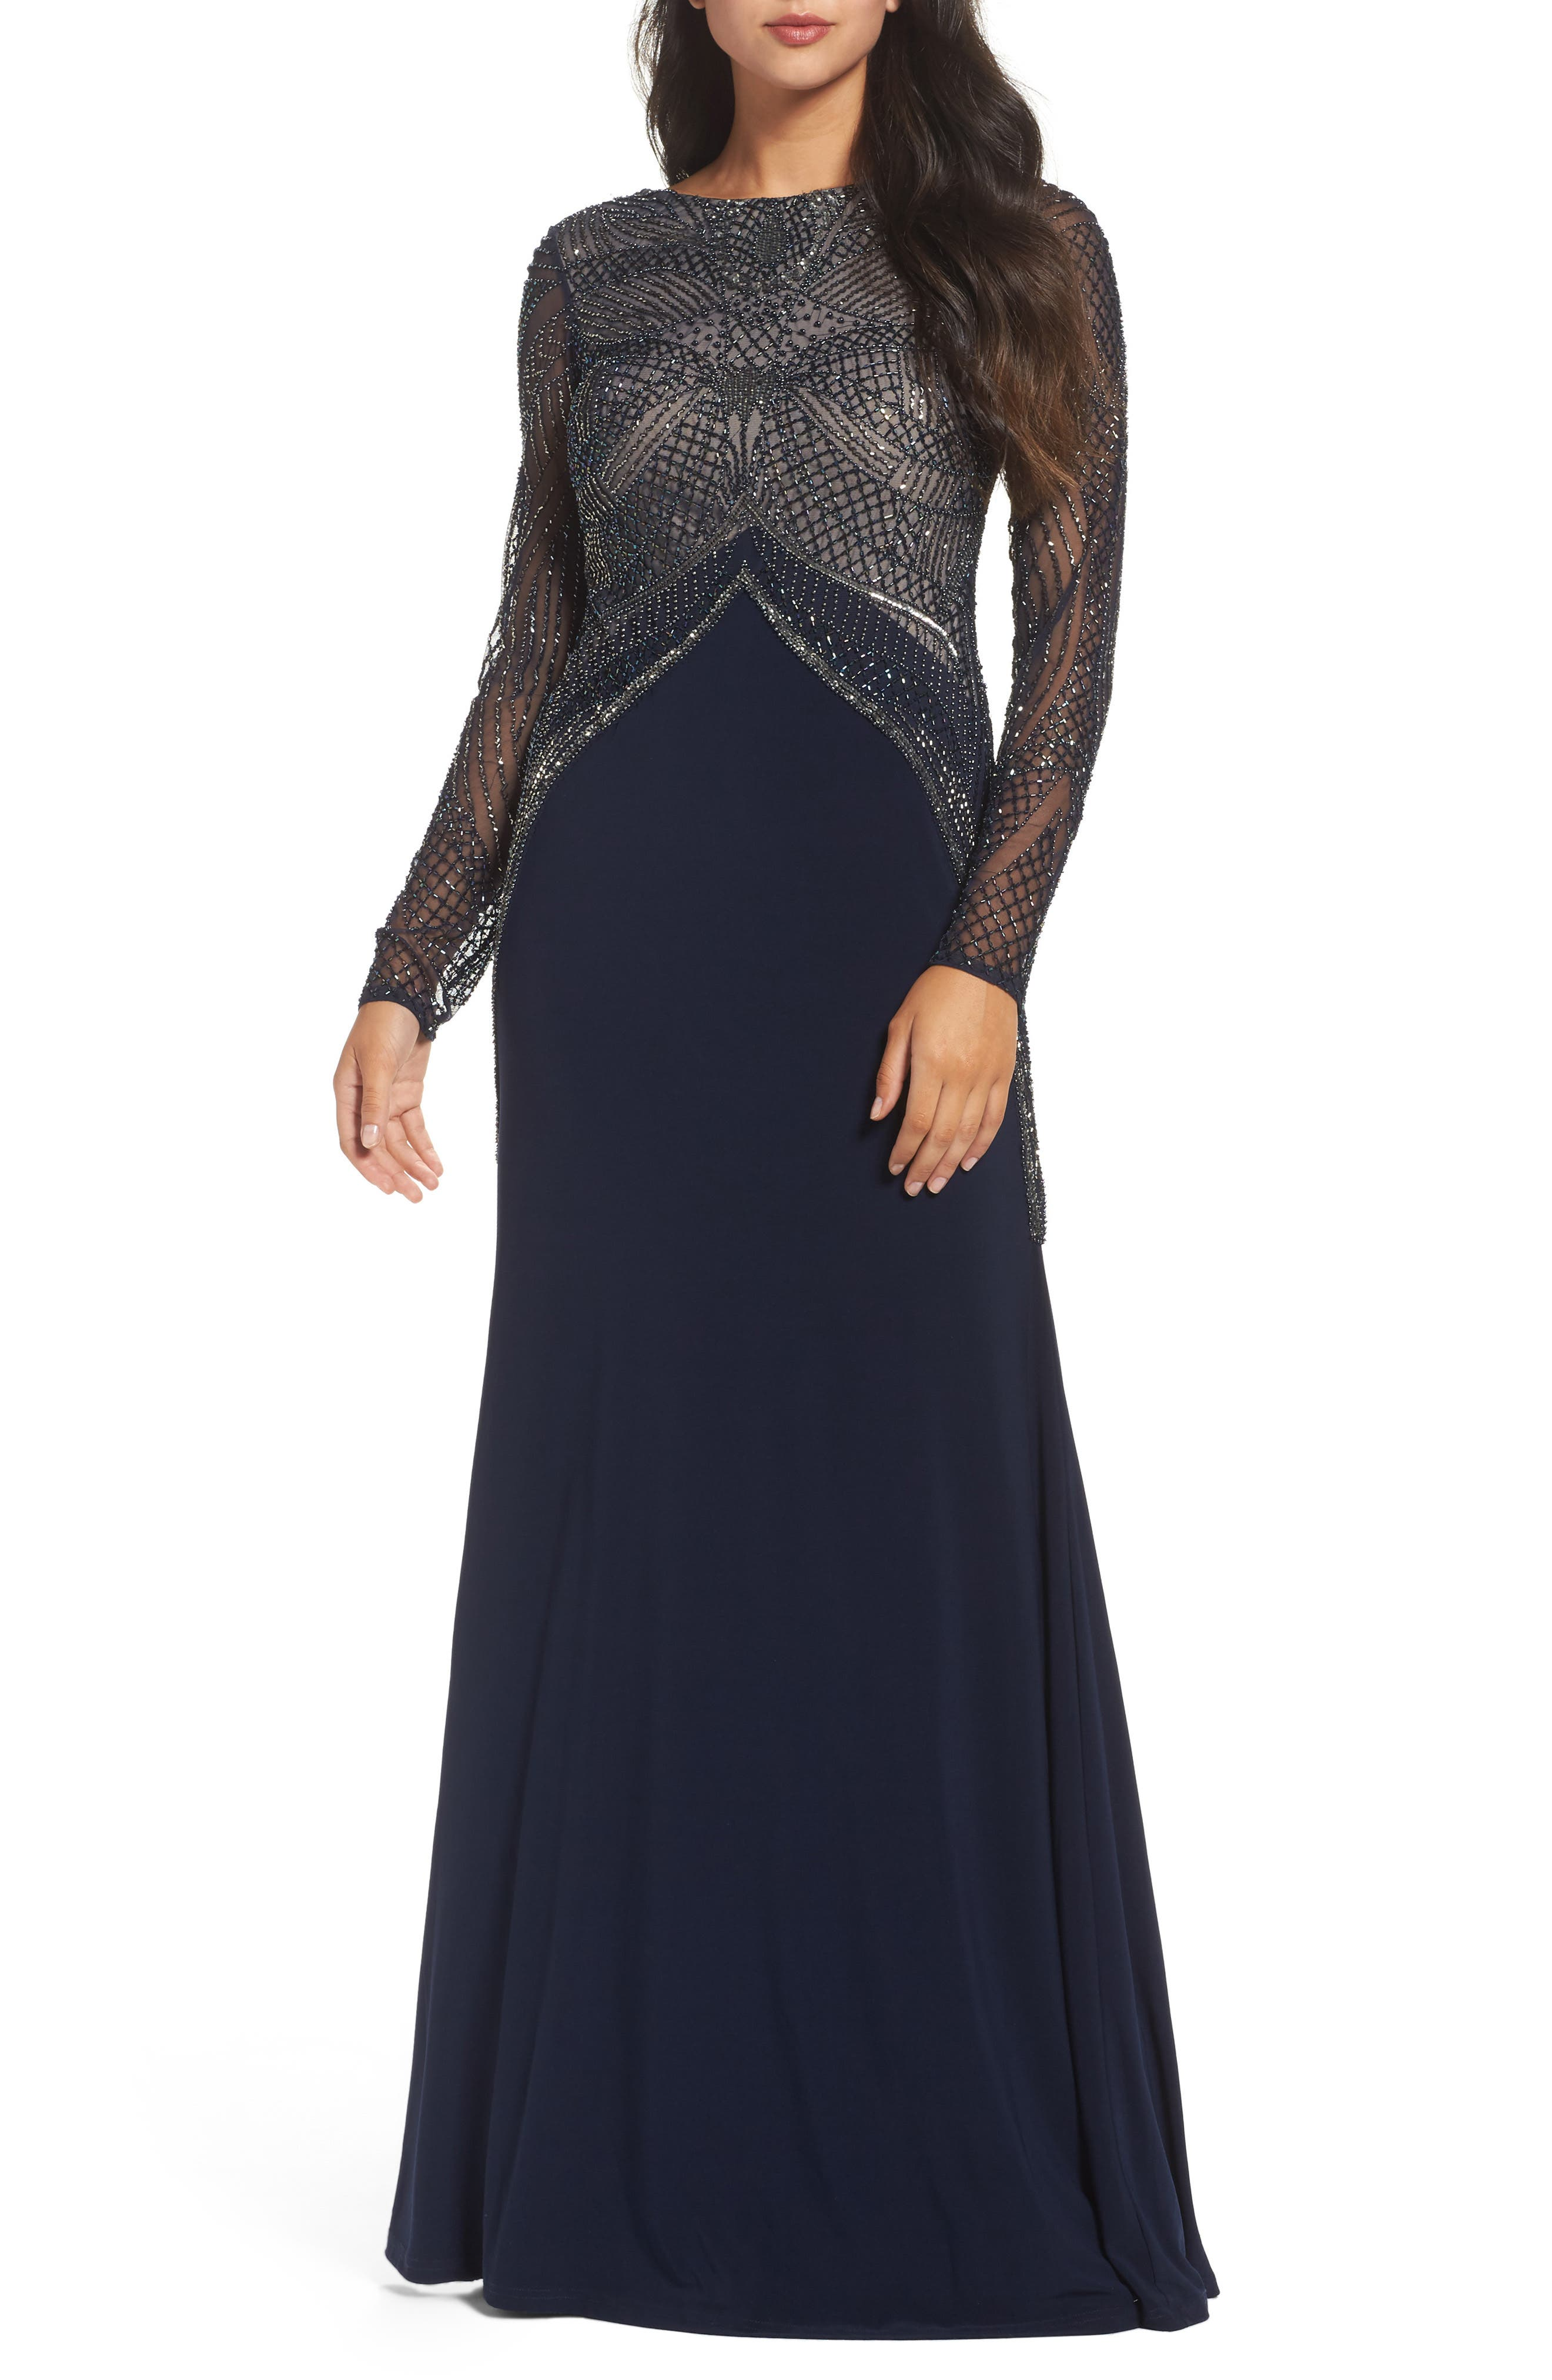 Main Image - Adrianna Papell Beaded Long Sleeve Gown